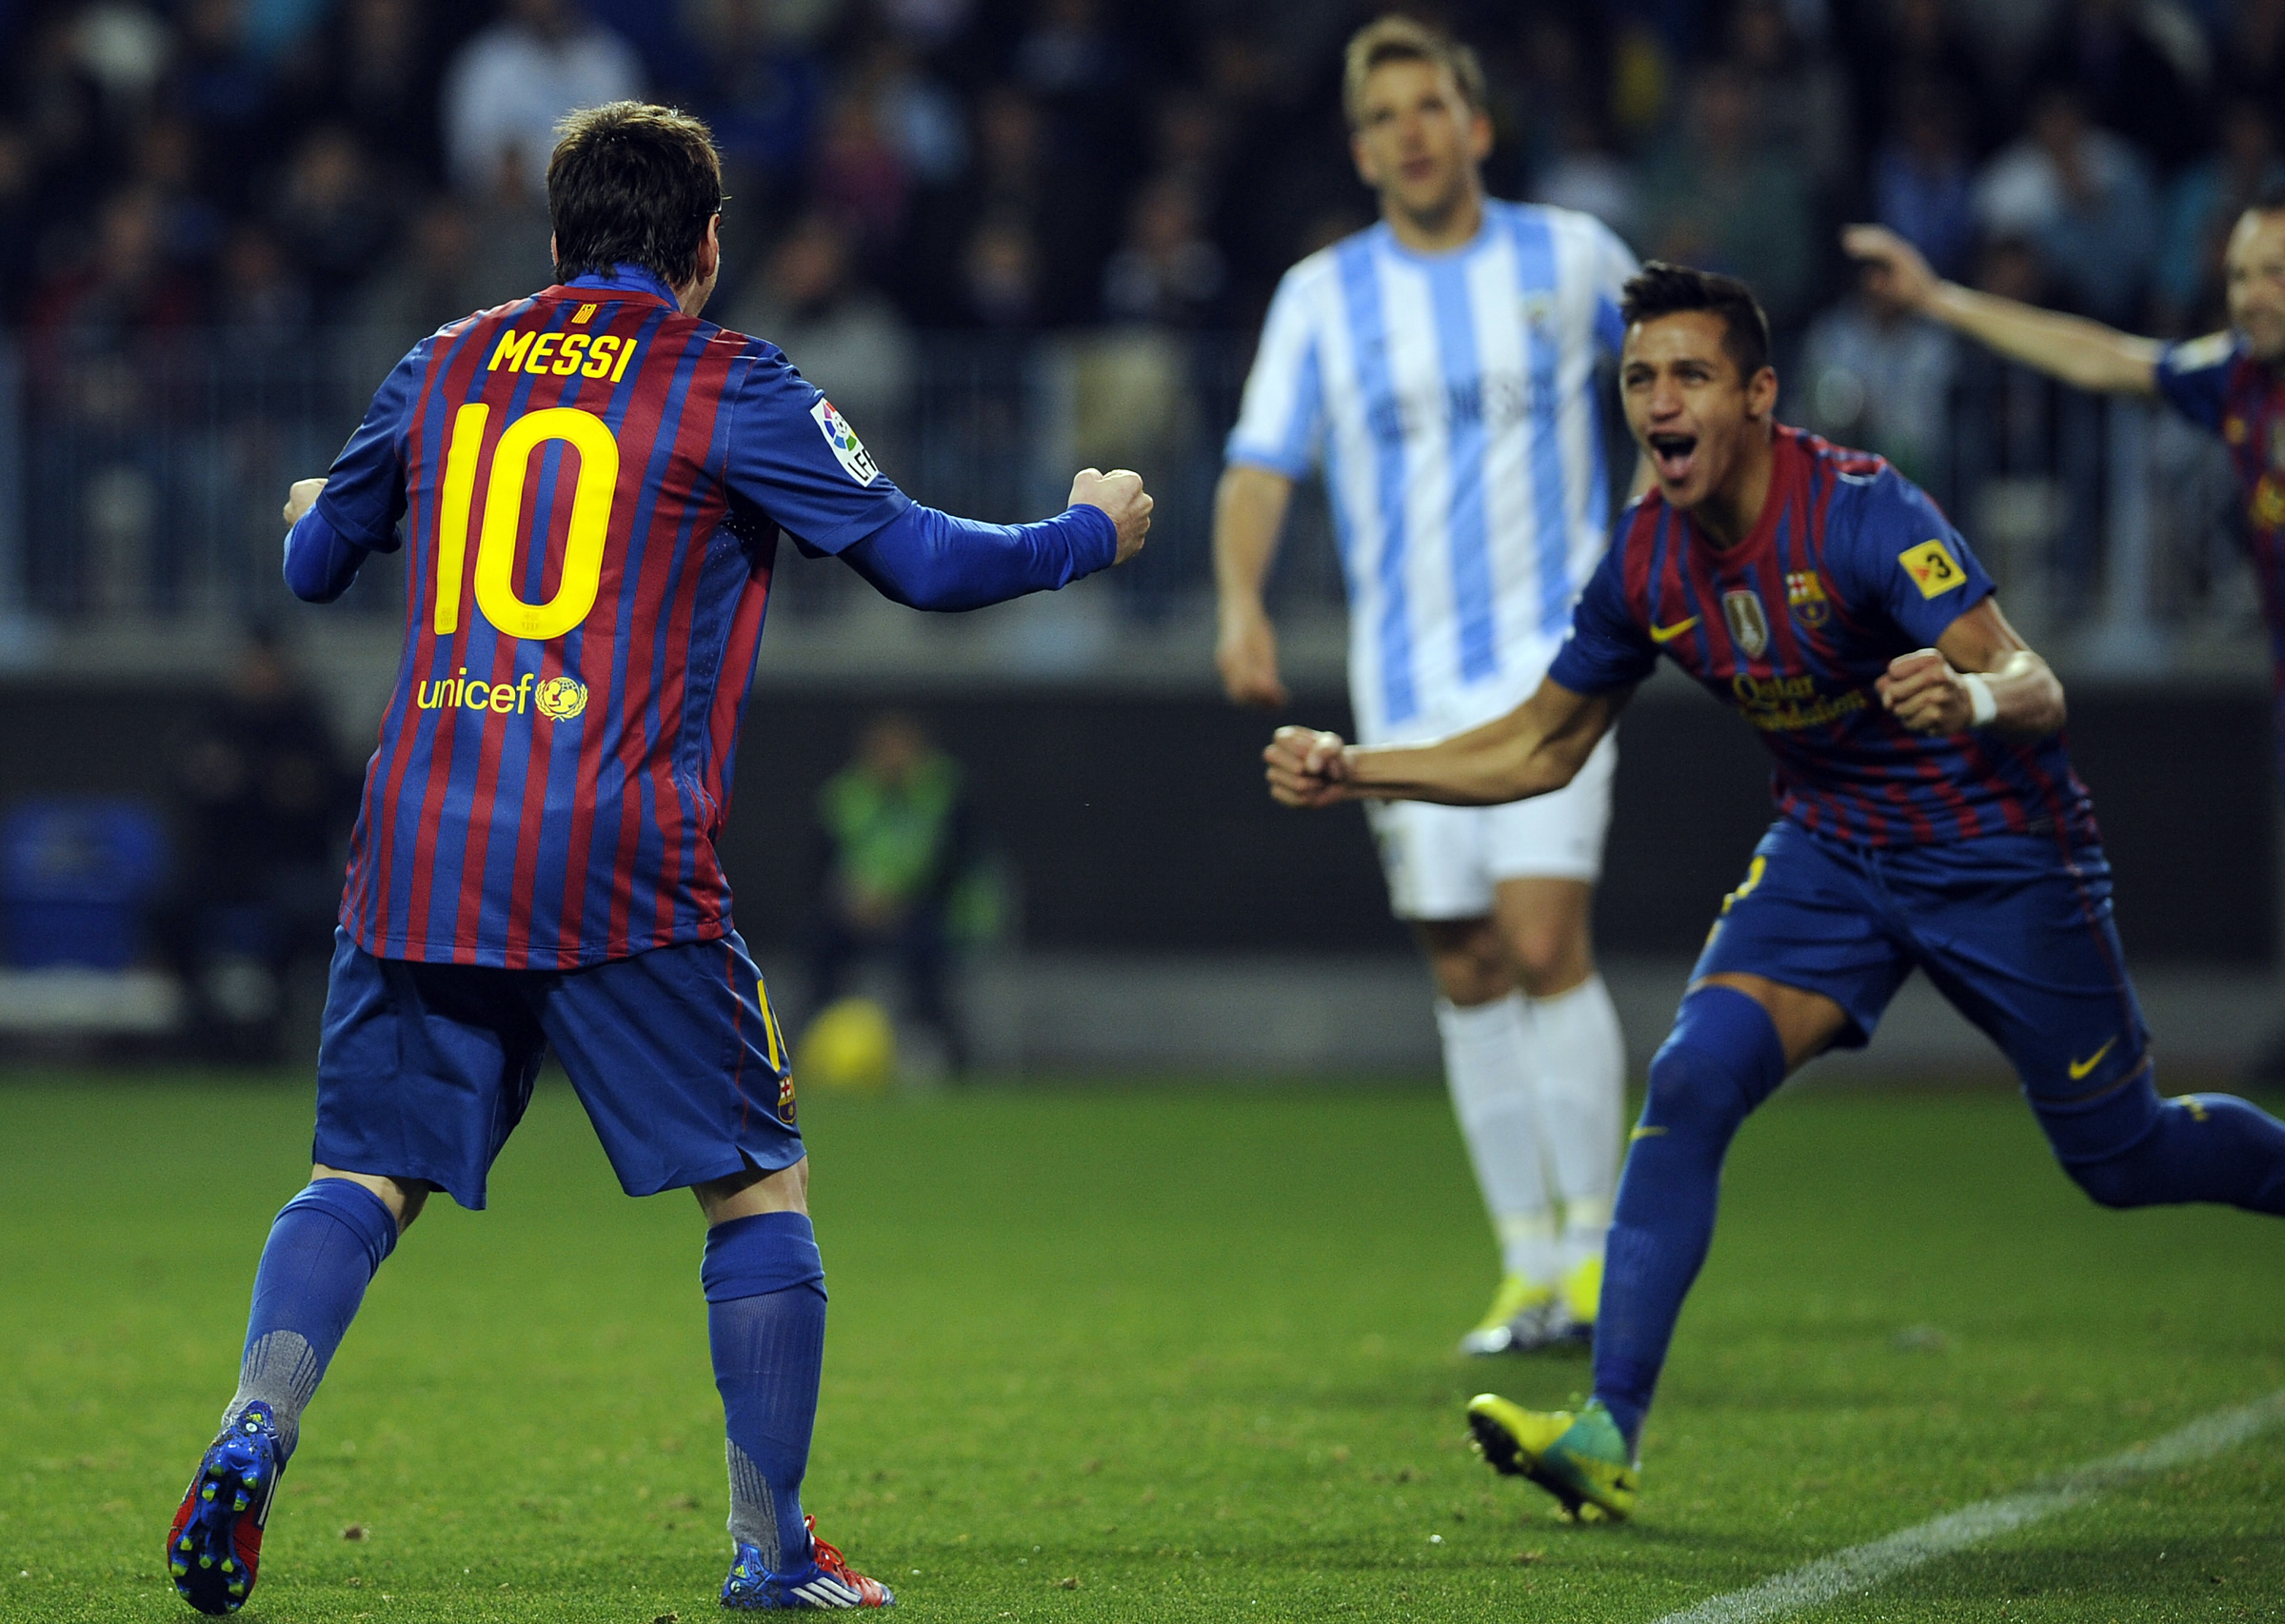 Barcelona's Chiliean forward Alexis Sanchez (R) celebrates with Barcelona's Argentinian forward Lionel Messi (L) after scoring against Malaga during their Spanish League football match, on January 22, 2012 at La Rosaleda stadium in Malaga. Barcelona won 1-4.AFP PHOTO / CRISTINA QUICLER (Photo credit should read CRISTINA QUICLER/AFP/Getty Images)